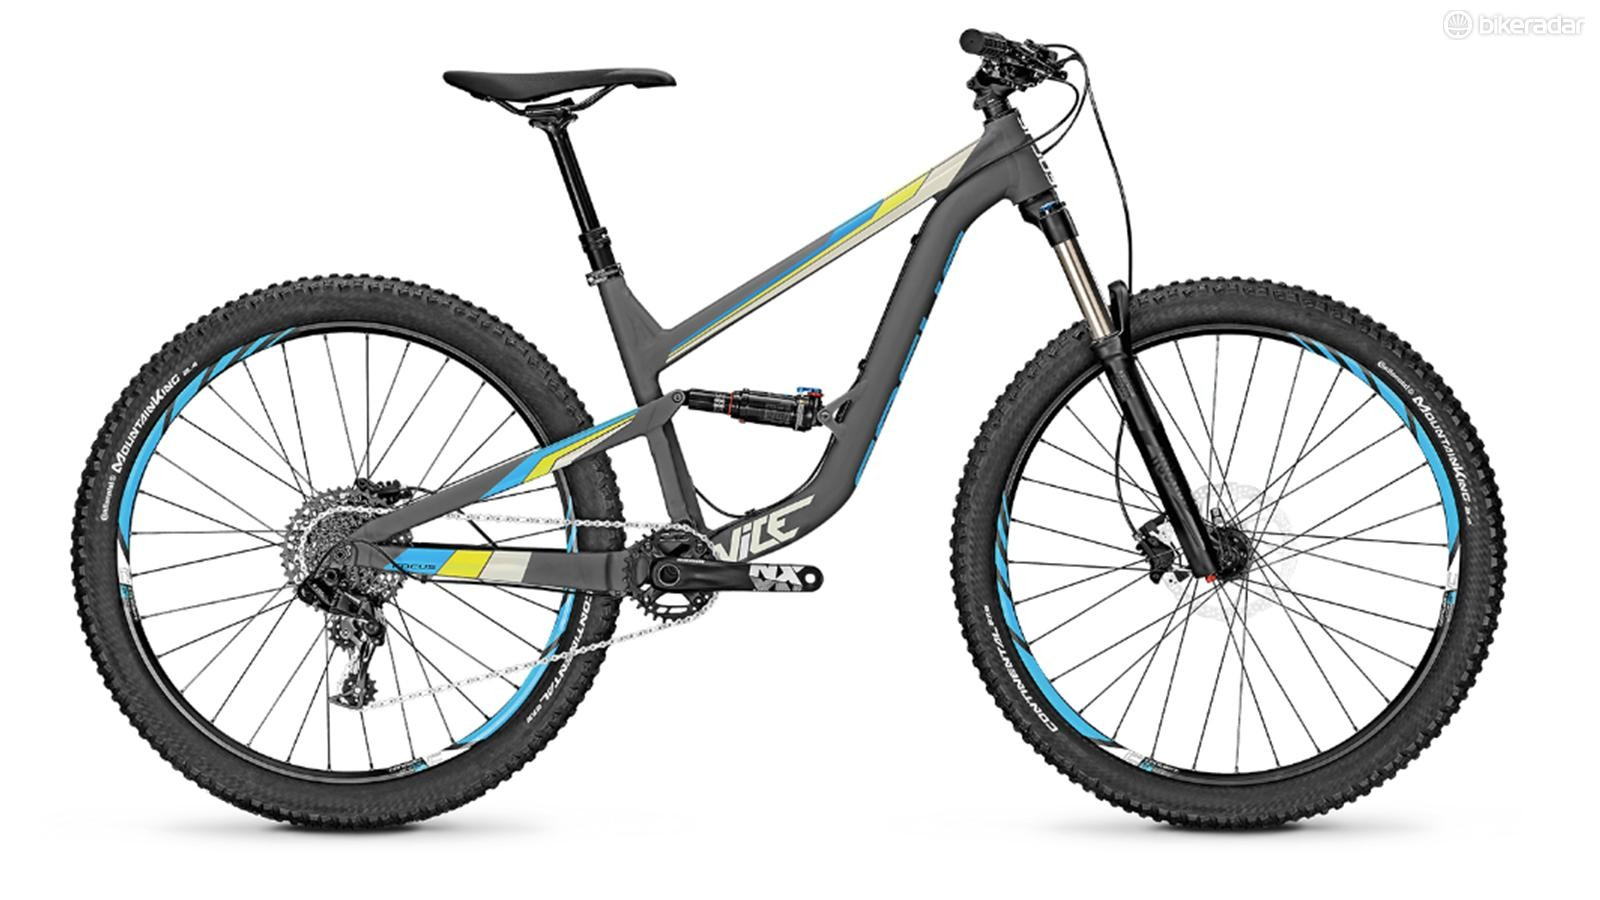 The Focus Vice is intended to be a gateway drug to the world of mountain biking